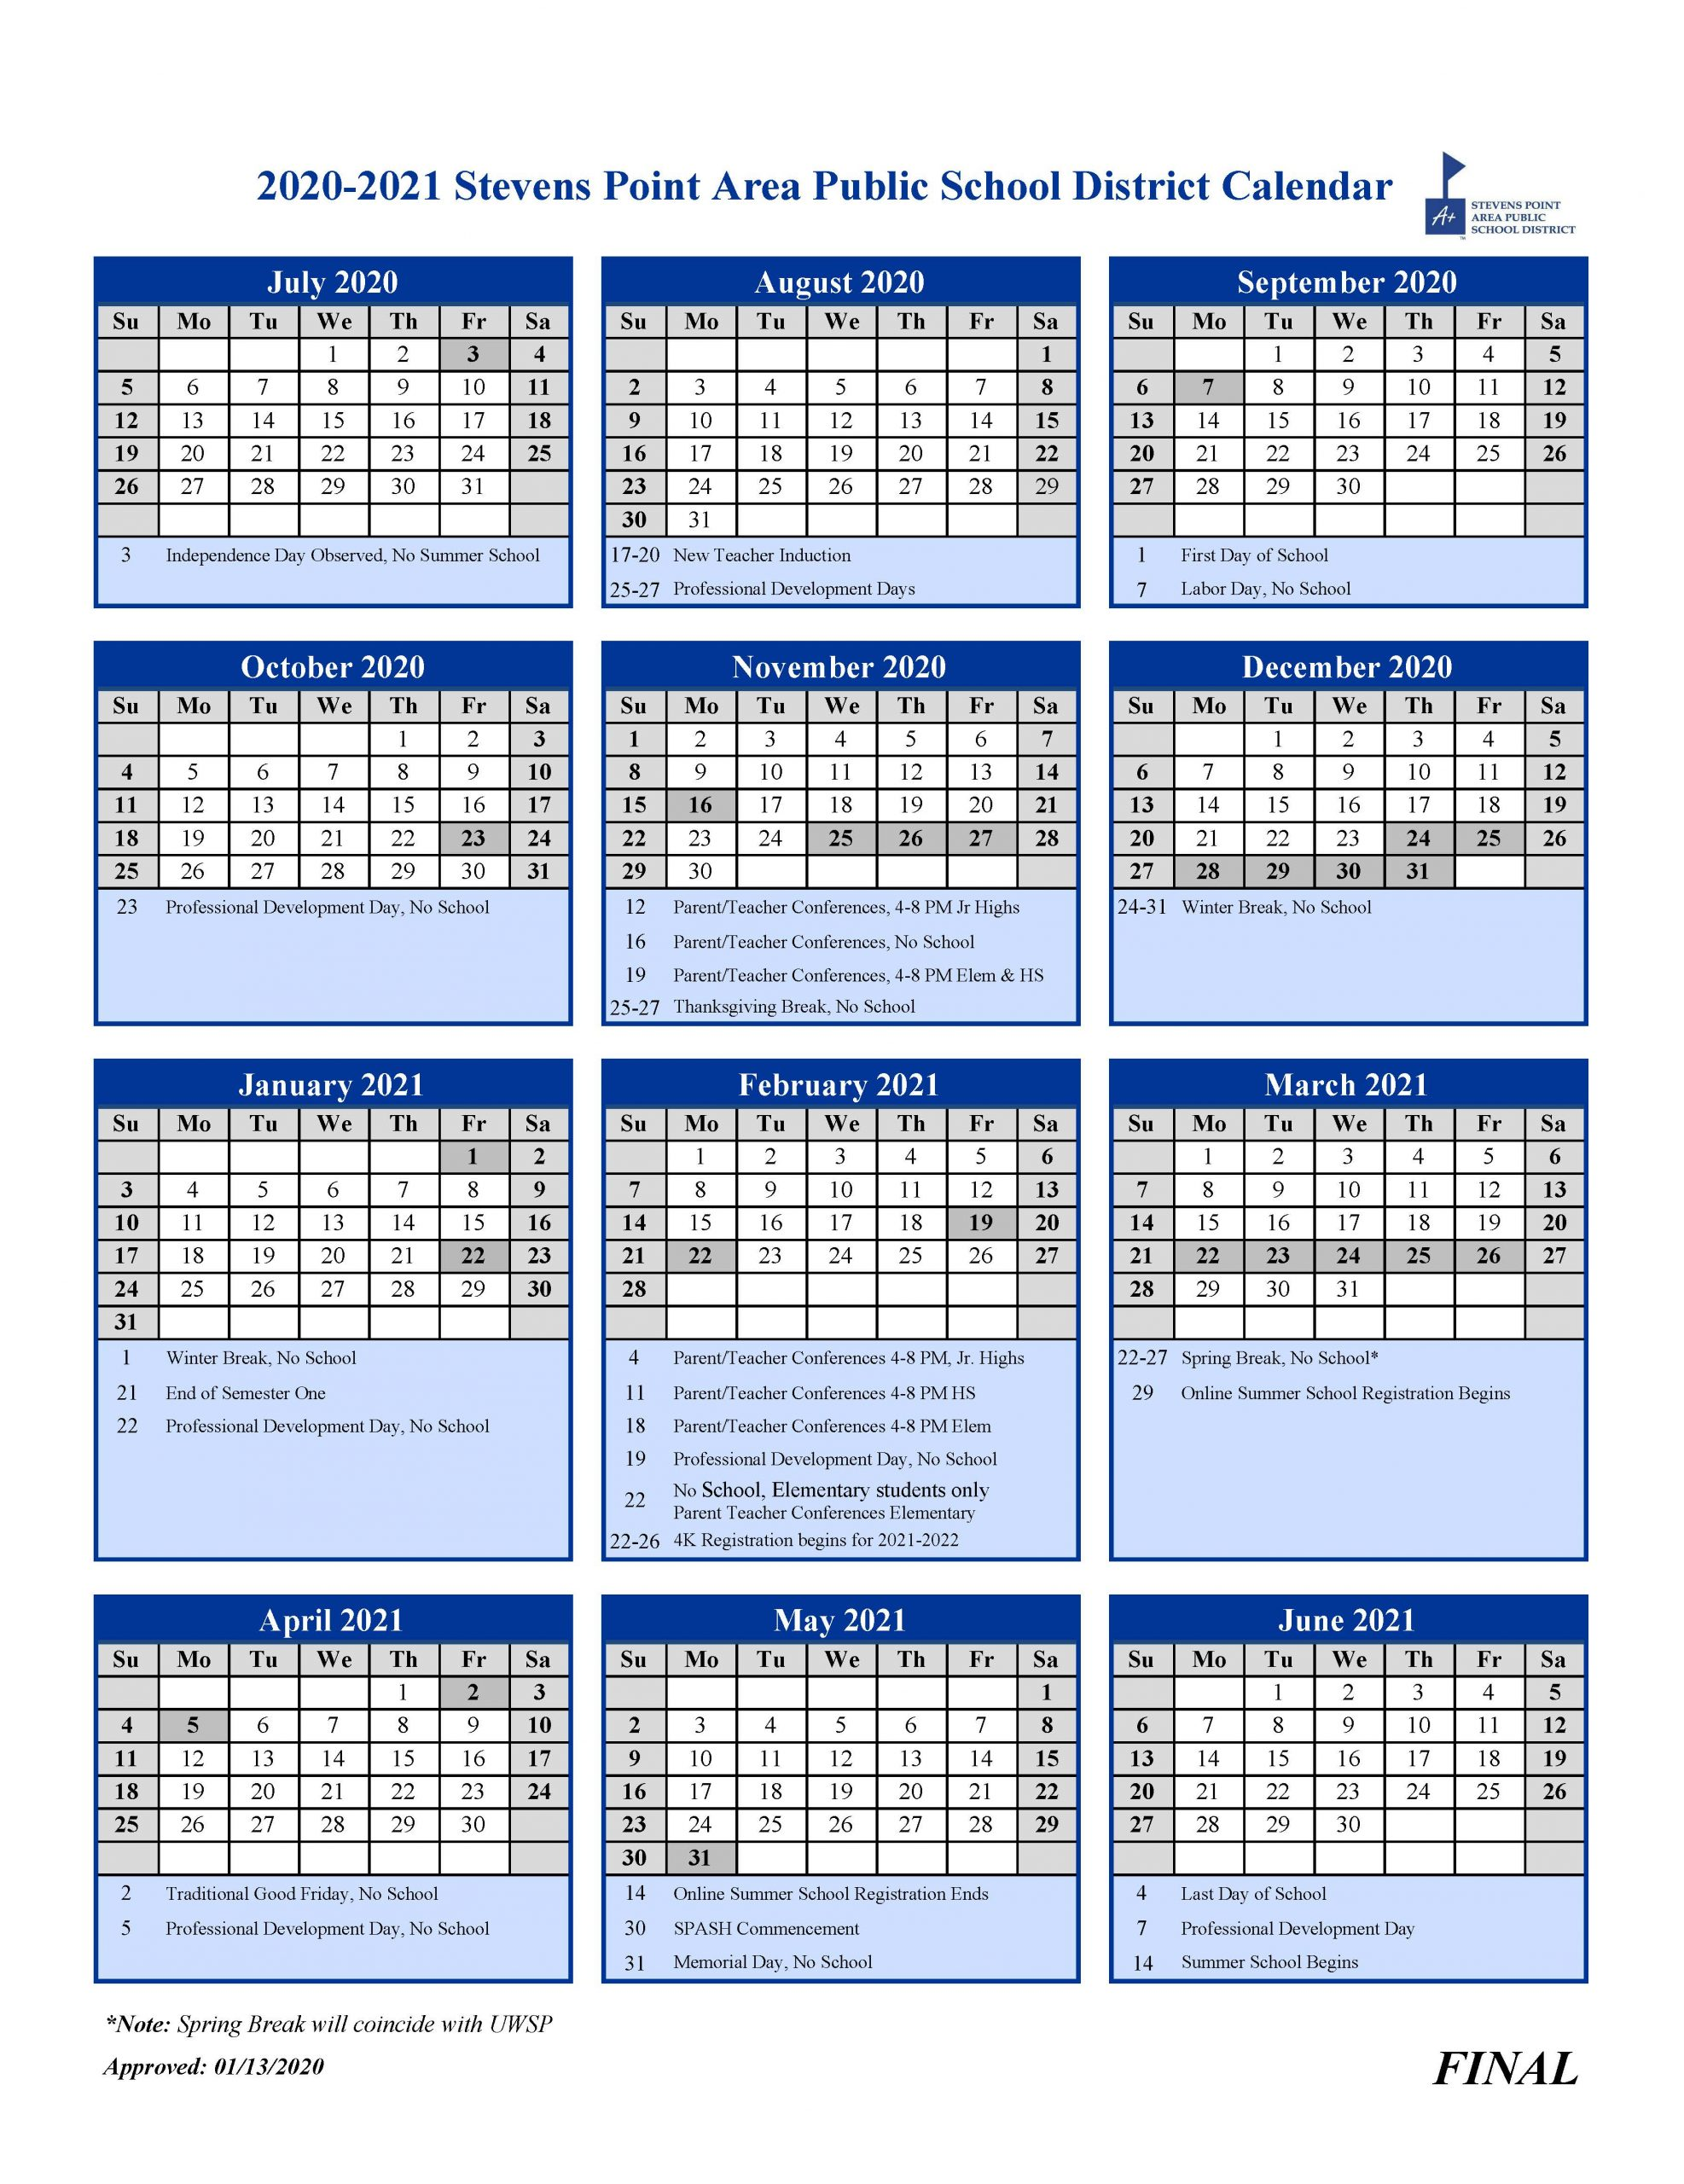 4K / 4K Frequently Asked Questions Within Stevens Point School District Calendar 2021